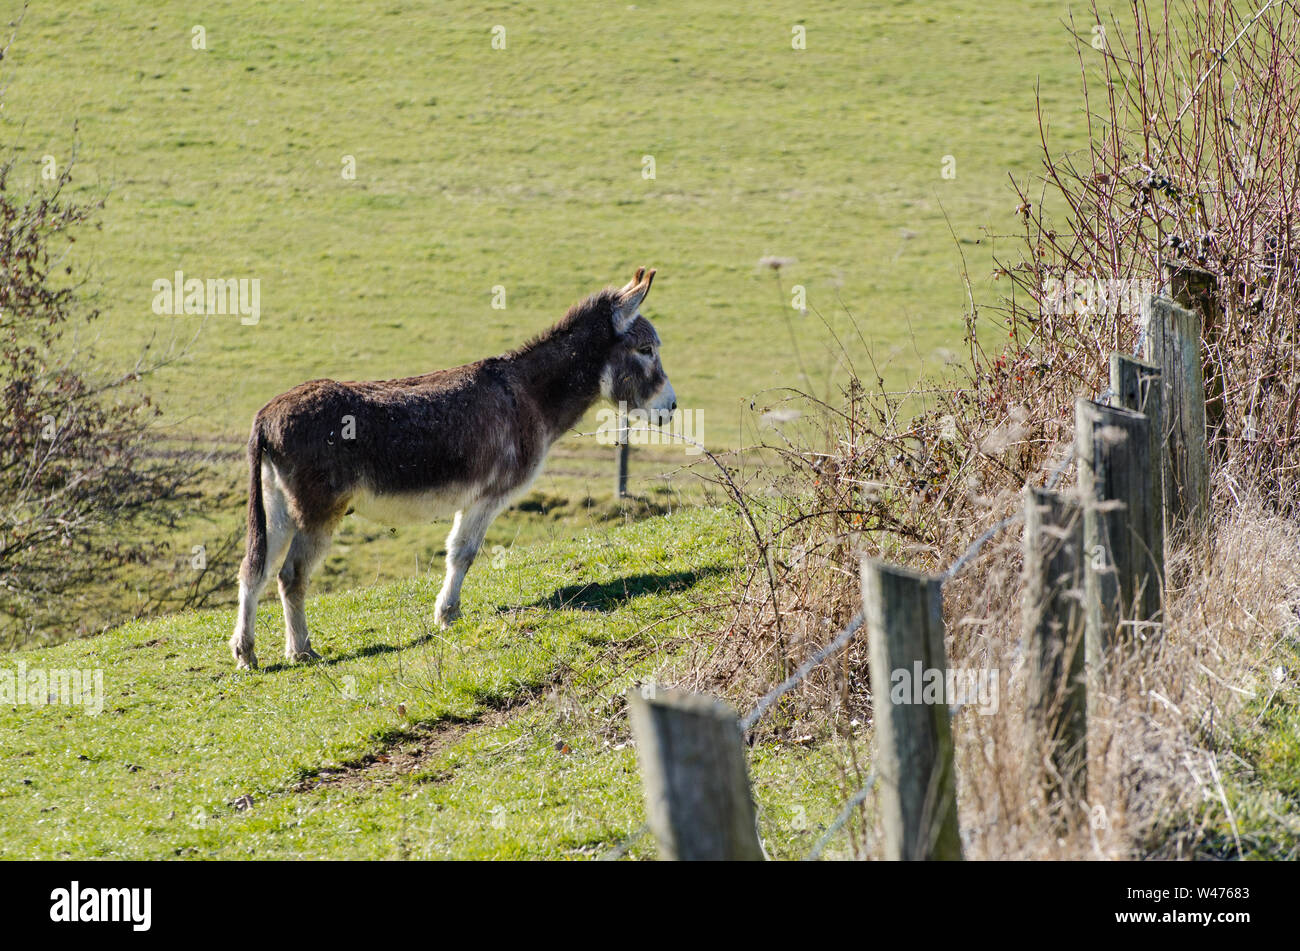 Equus africanus asinus, domestic donkey on a pasture in the countryside in Bavaria, Germany Stock Photo